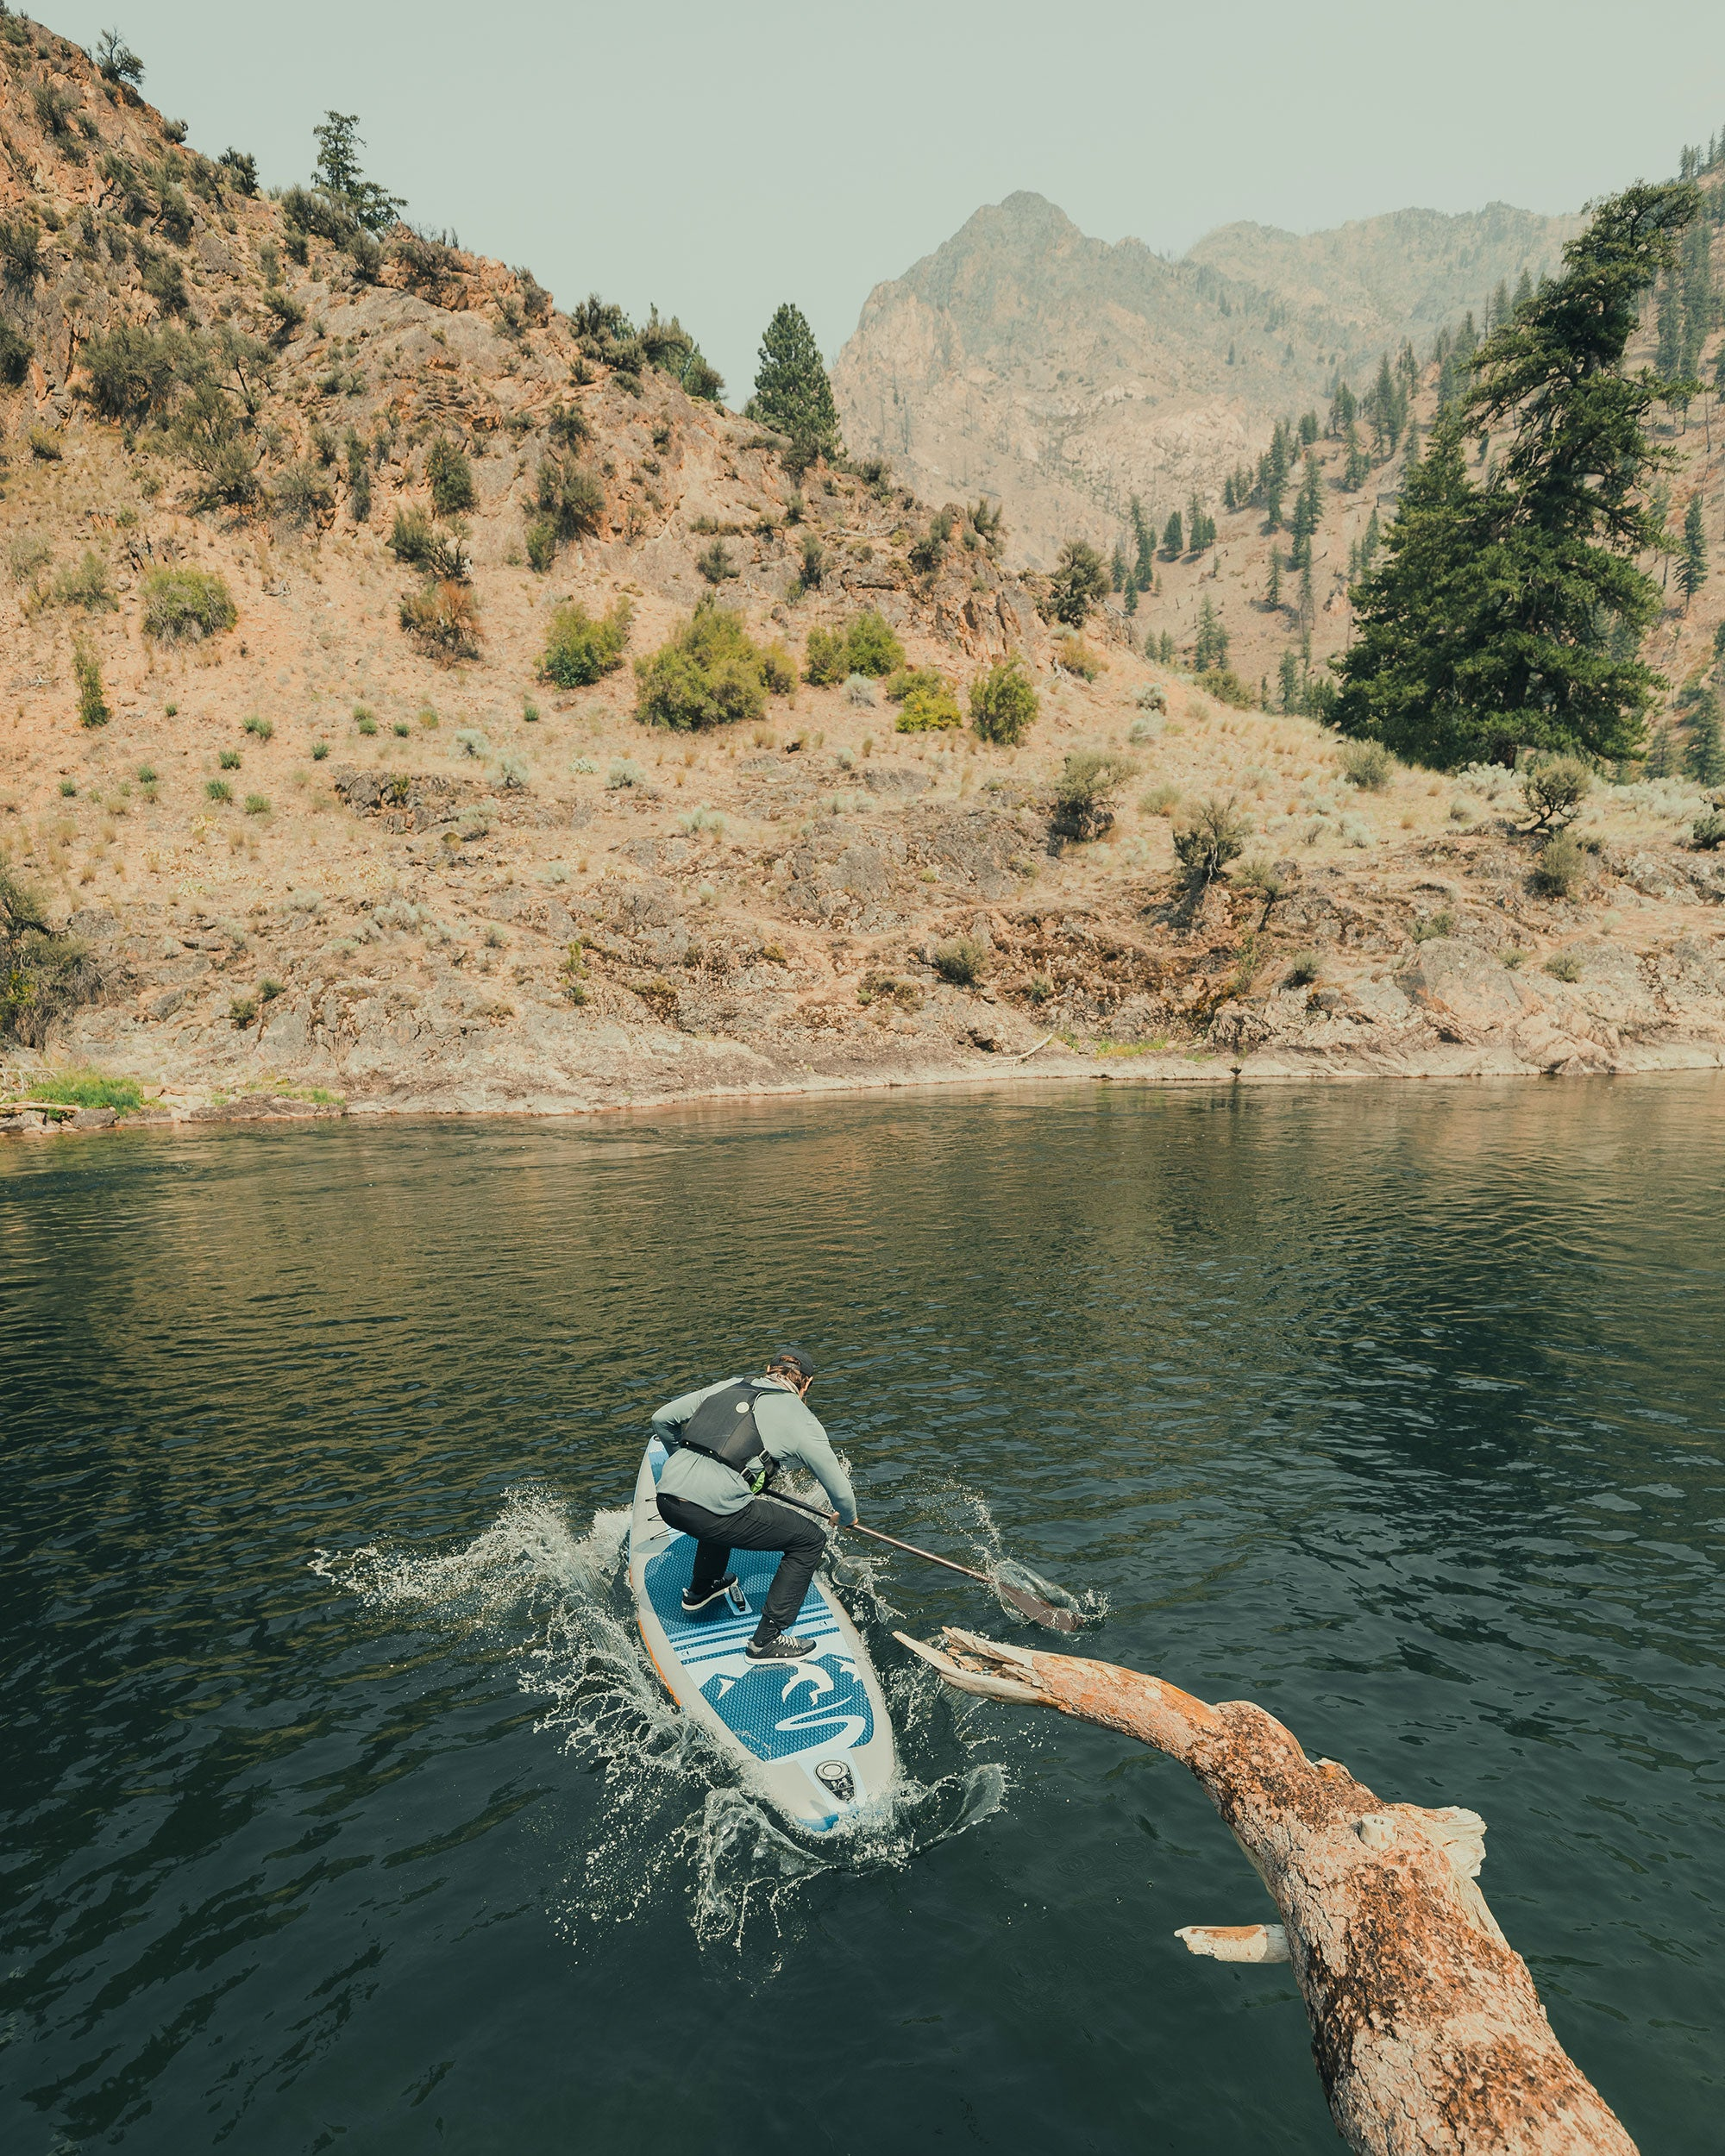 100 Miles on the Middle Fork of the Salmon River with Slater Trout and His Body Glove Performer 11 Stand-Up Paddleboard